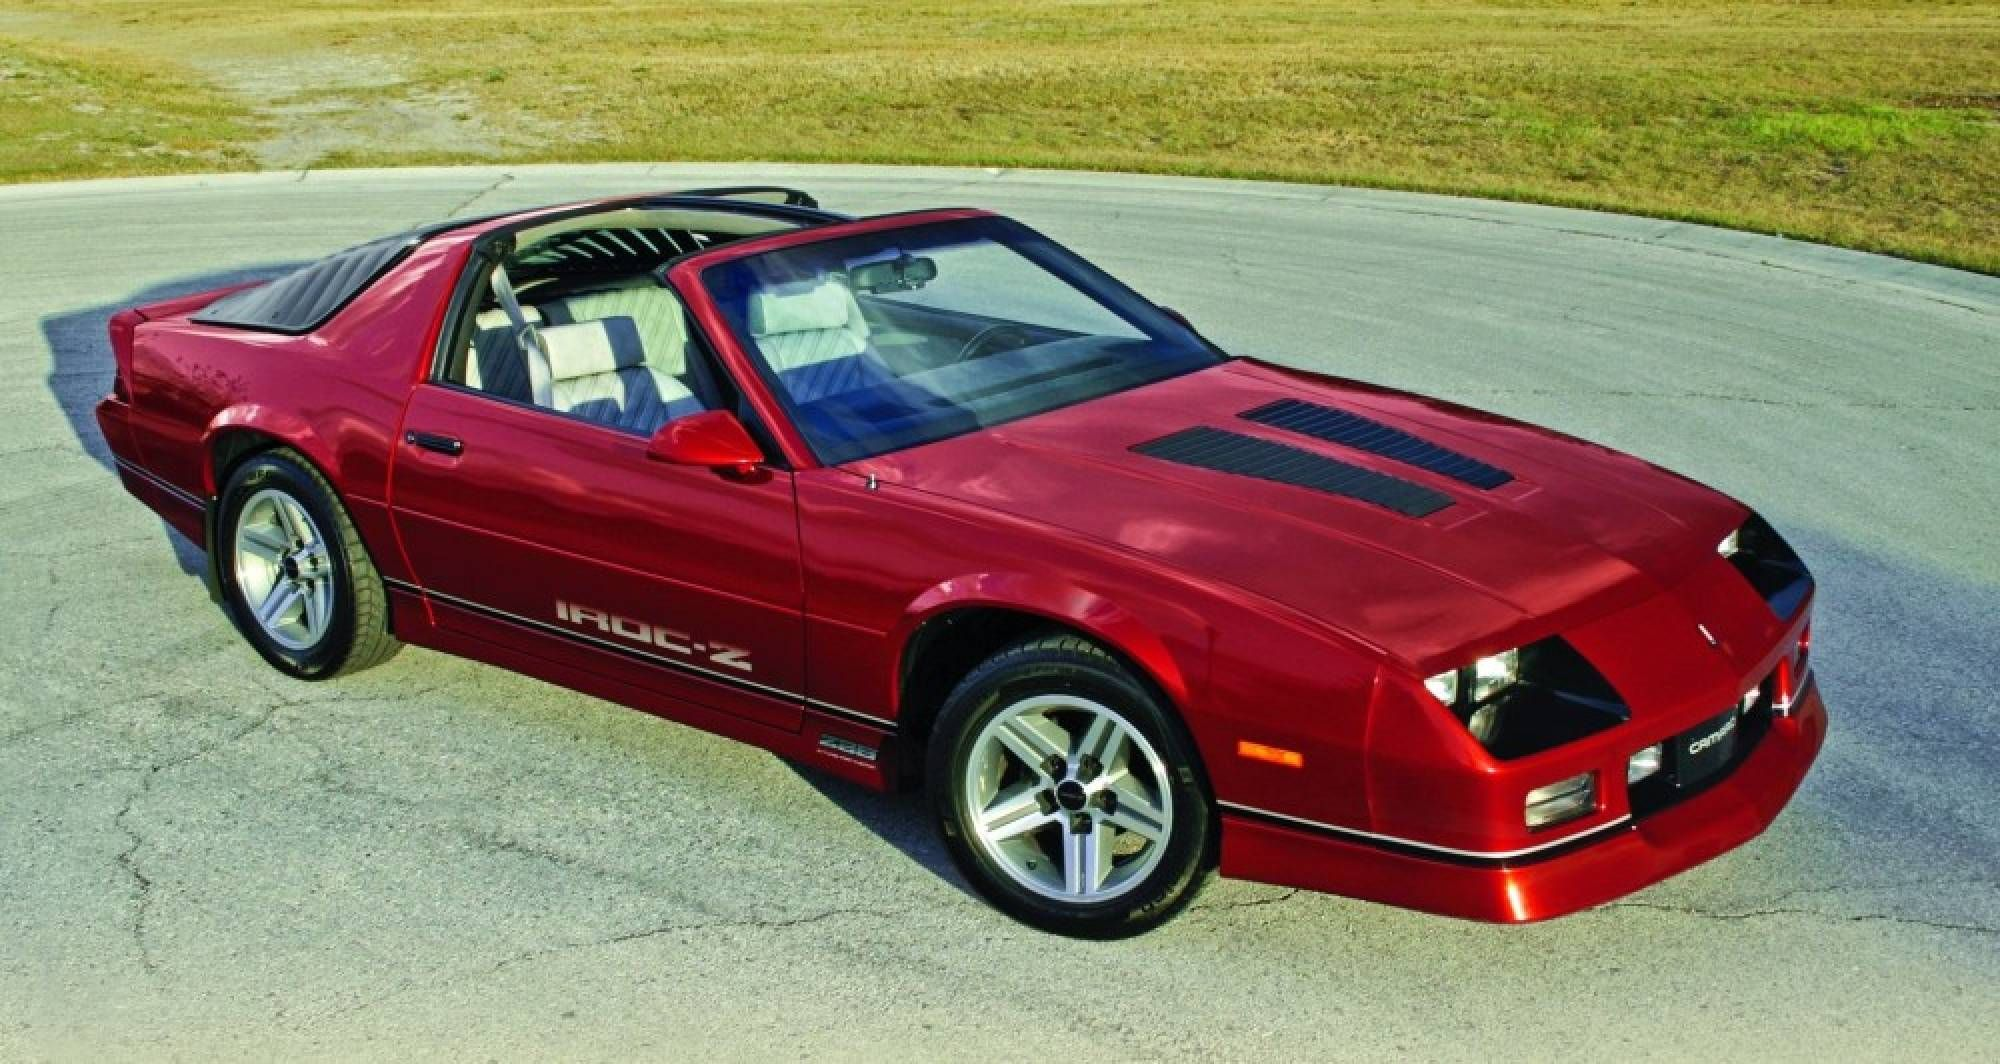 Photo courtesy matthew litwin out of the darkness 1987 chevrolet camaro iroc z image 1 of 9